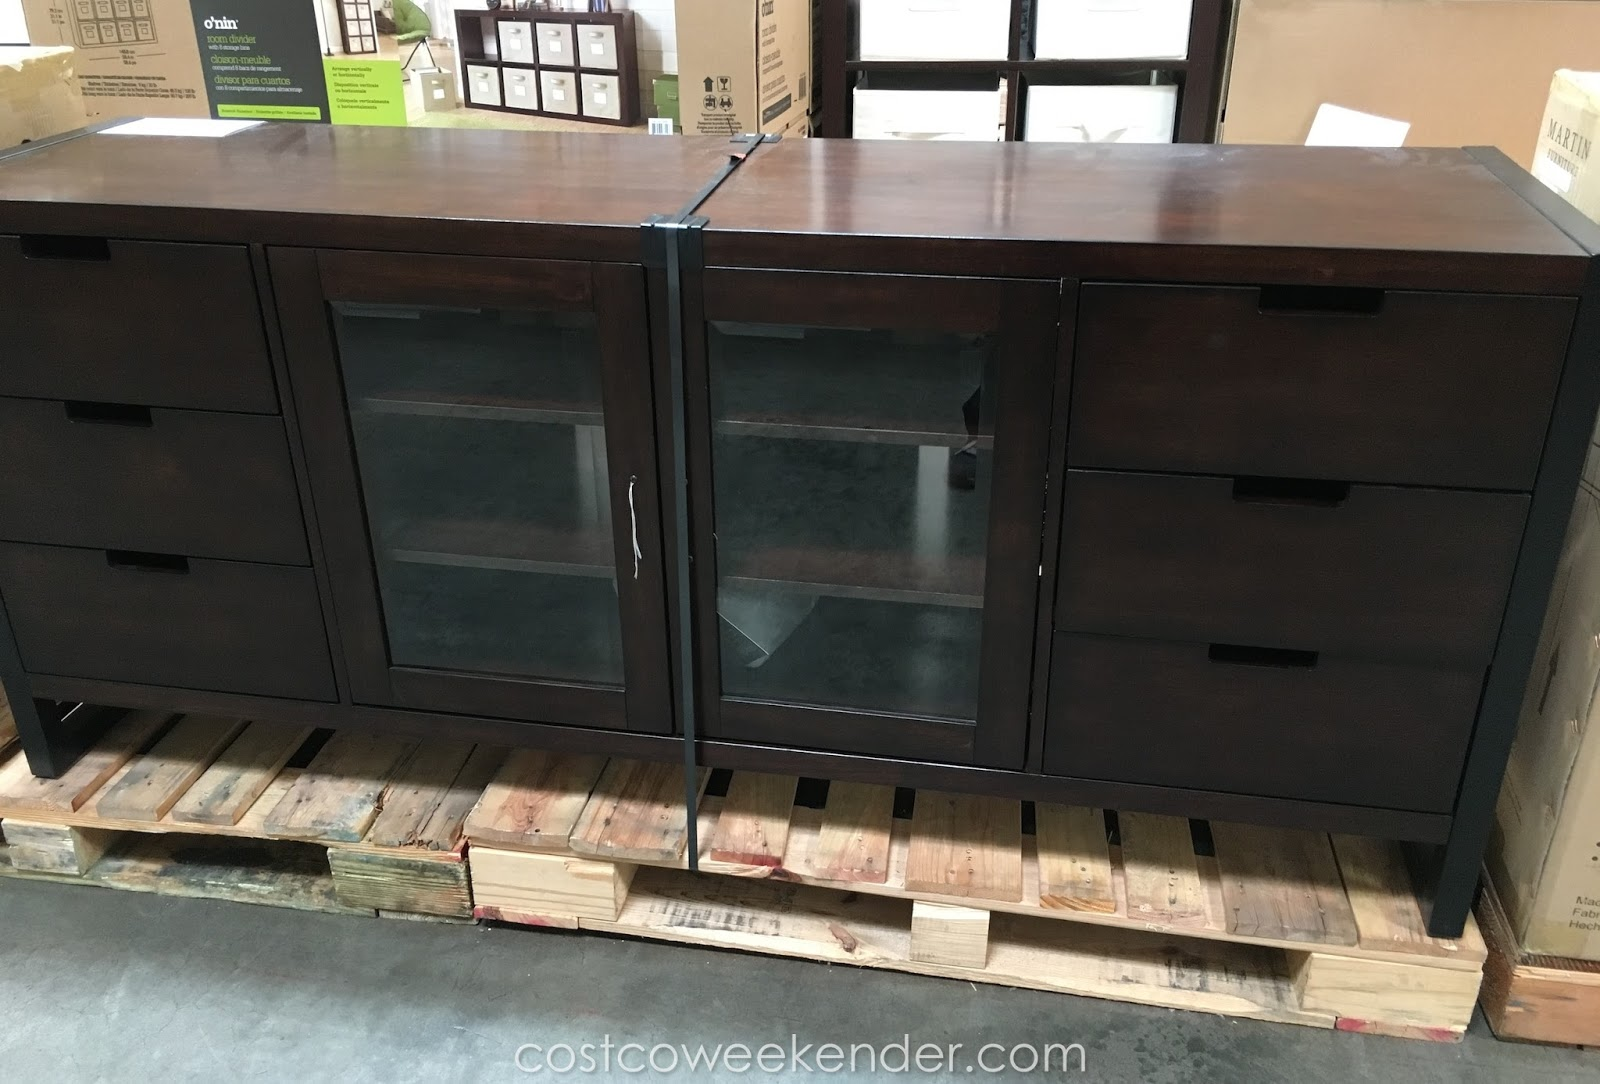 martin furniture television console costco weekender. Black Bedroom Furniture Sets. Home Design Ideas